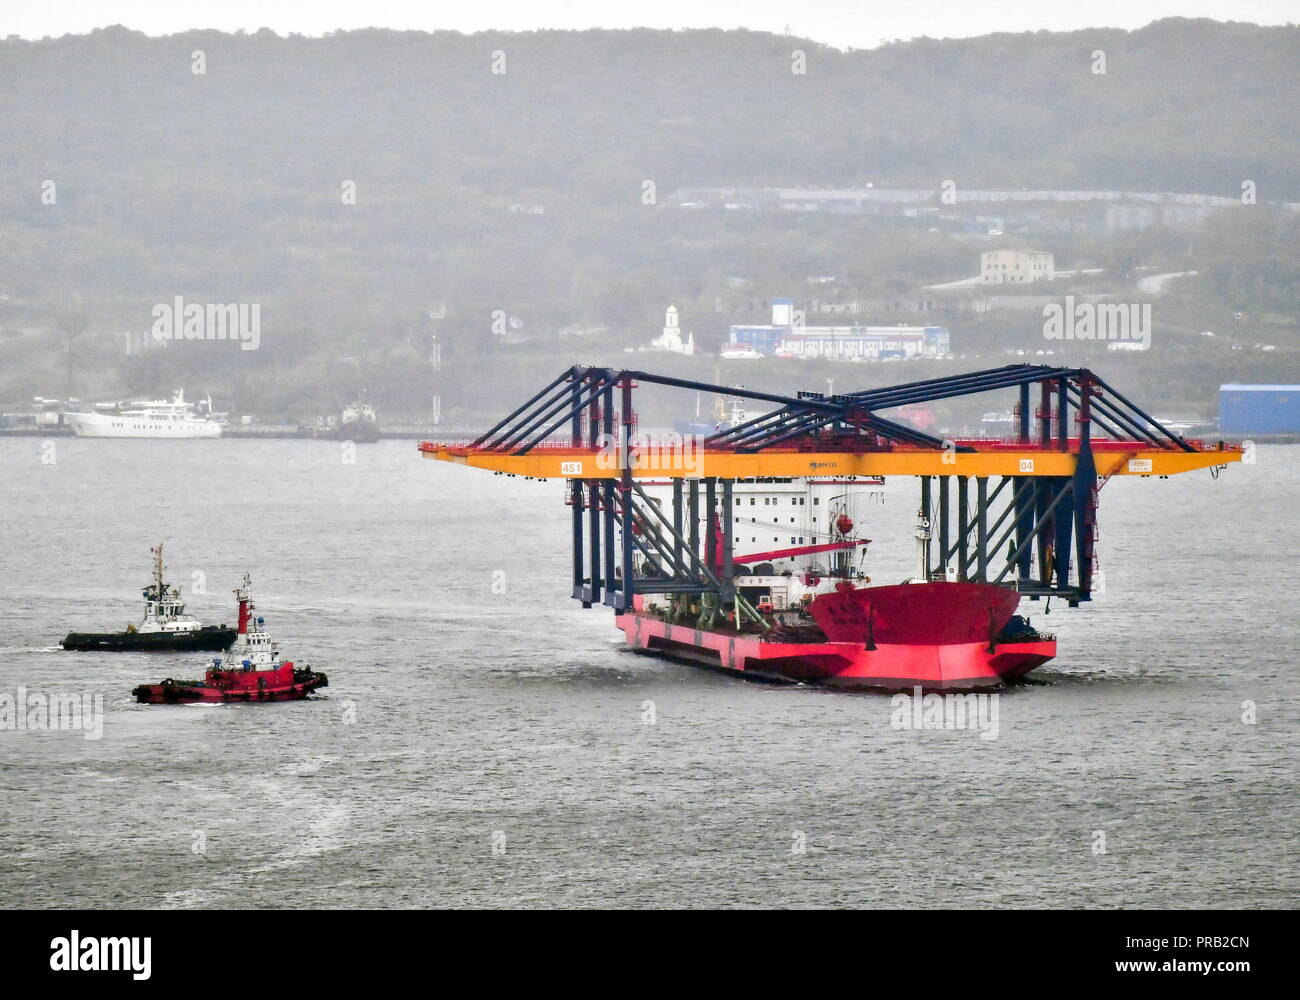 Vladivostok, Russia. 01st Oct, 2018. VLADIVOSTOK, RUSSIA - OCTOBER 1, 2018: Overhead cranes aboard the Zhen Hua 17 heavy load carrier are being delivered to the Vladivostok seaport from Shanghai. The cargo capacity of each crane is 45 tonnes, the span measuring 63 metres; the cranes are to speed up the transshipment of containerized freights at the Vladivostok seaport. Yuri Smityuk/TASS Credit: ITAR-TASS News Agency/Alamy Live News - Stock Image